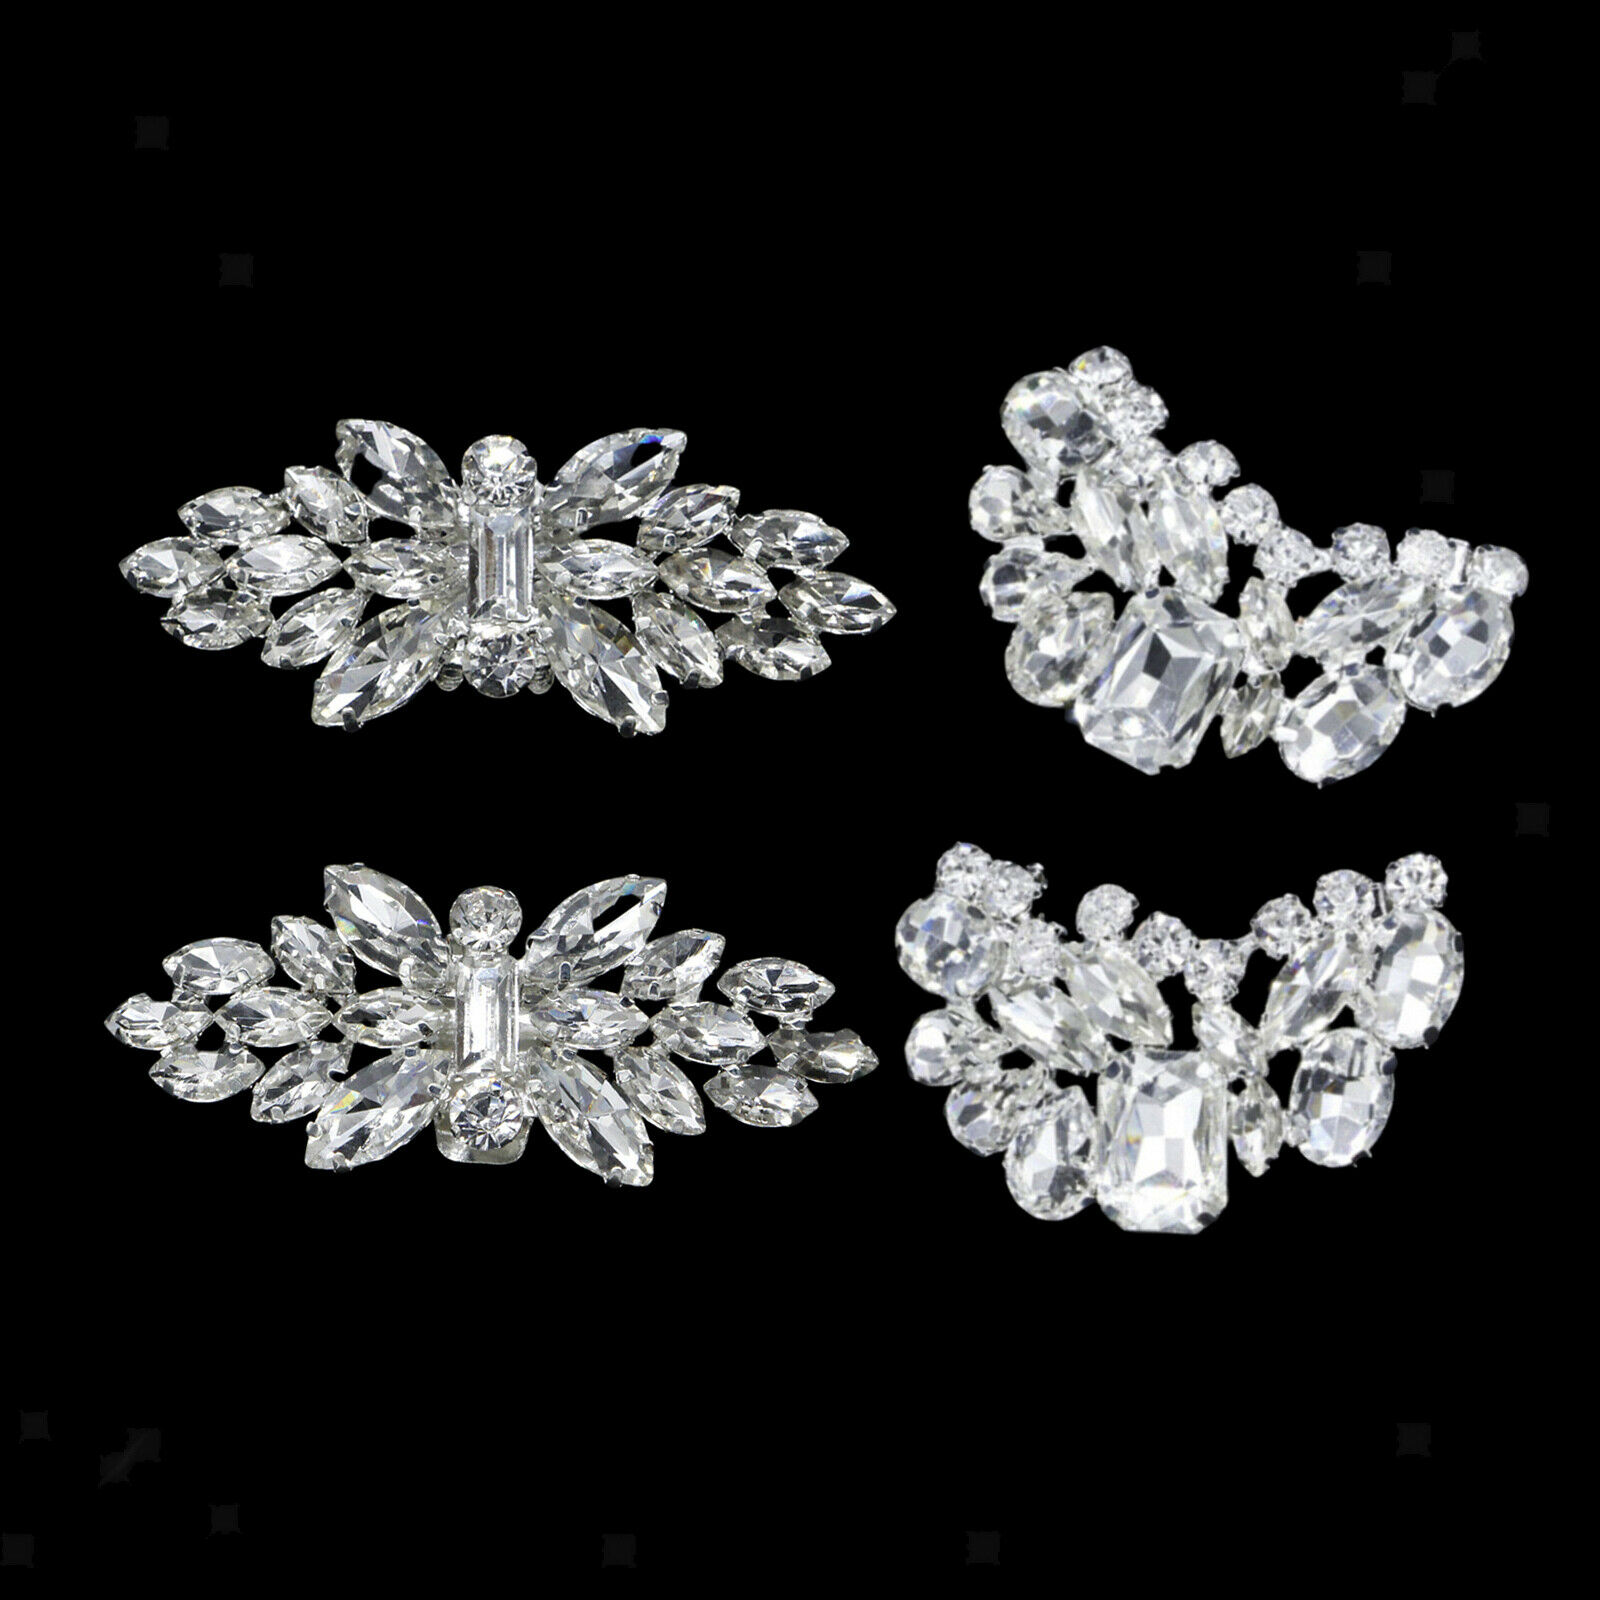 1 Pair Rhinestone Crystal Shoe Clips Ladies Party Prom Shoe Buckle Decor